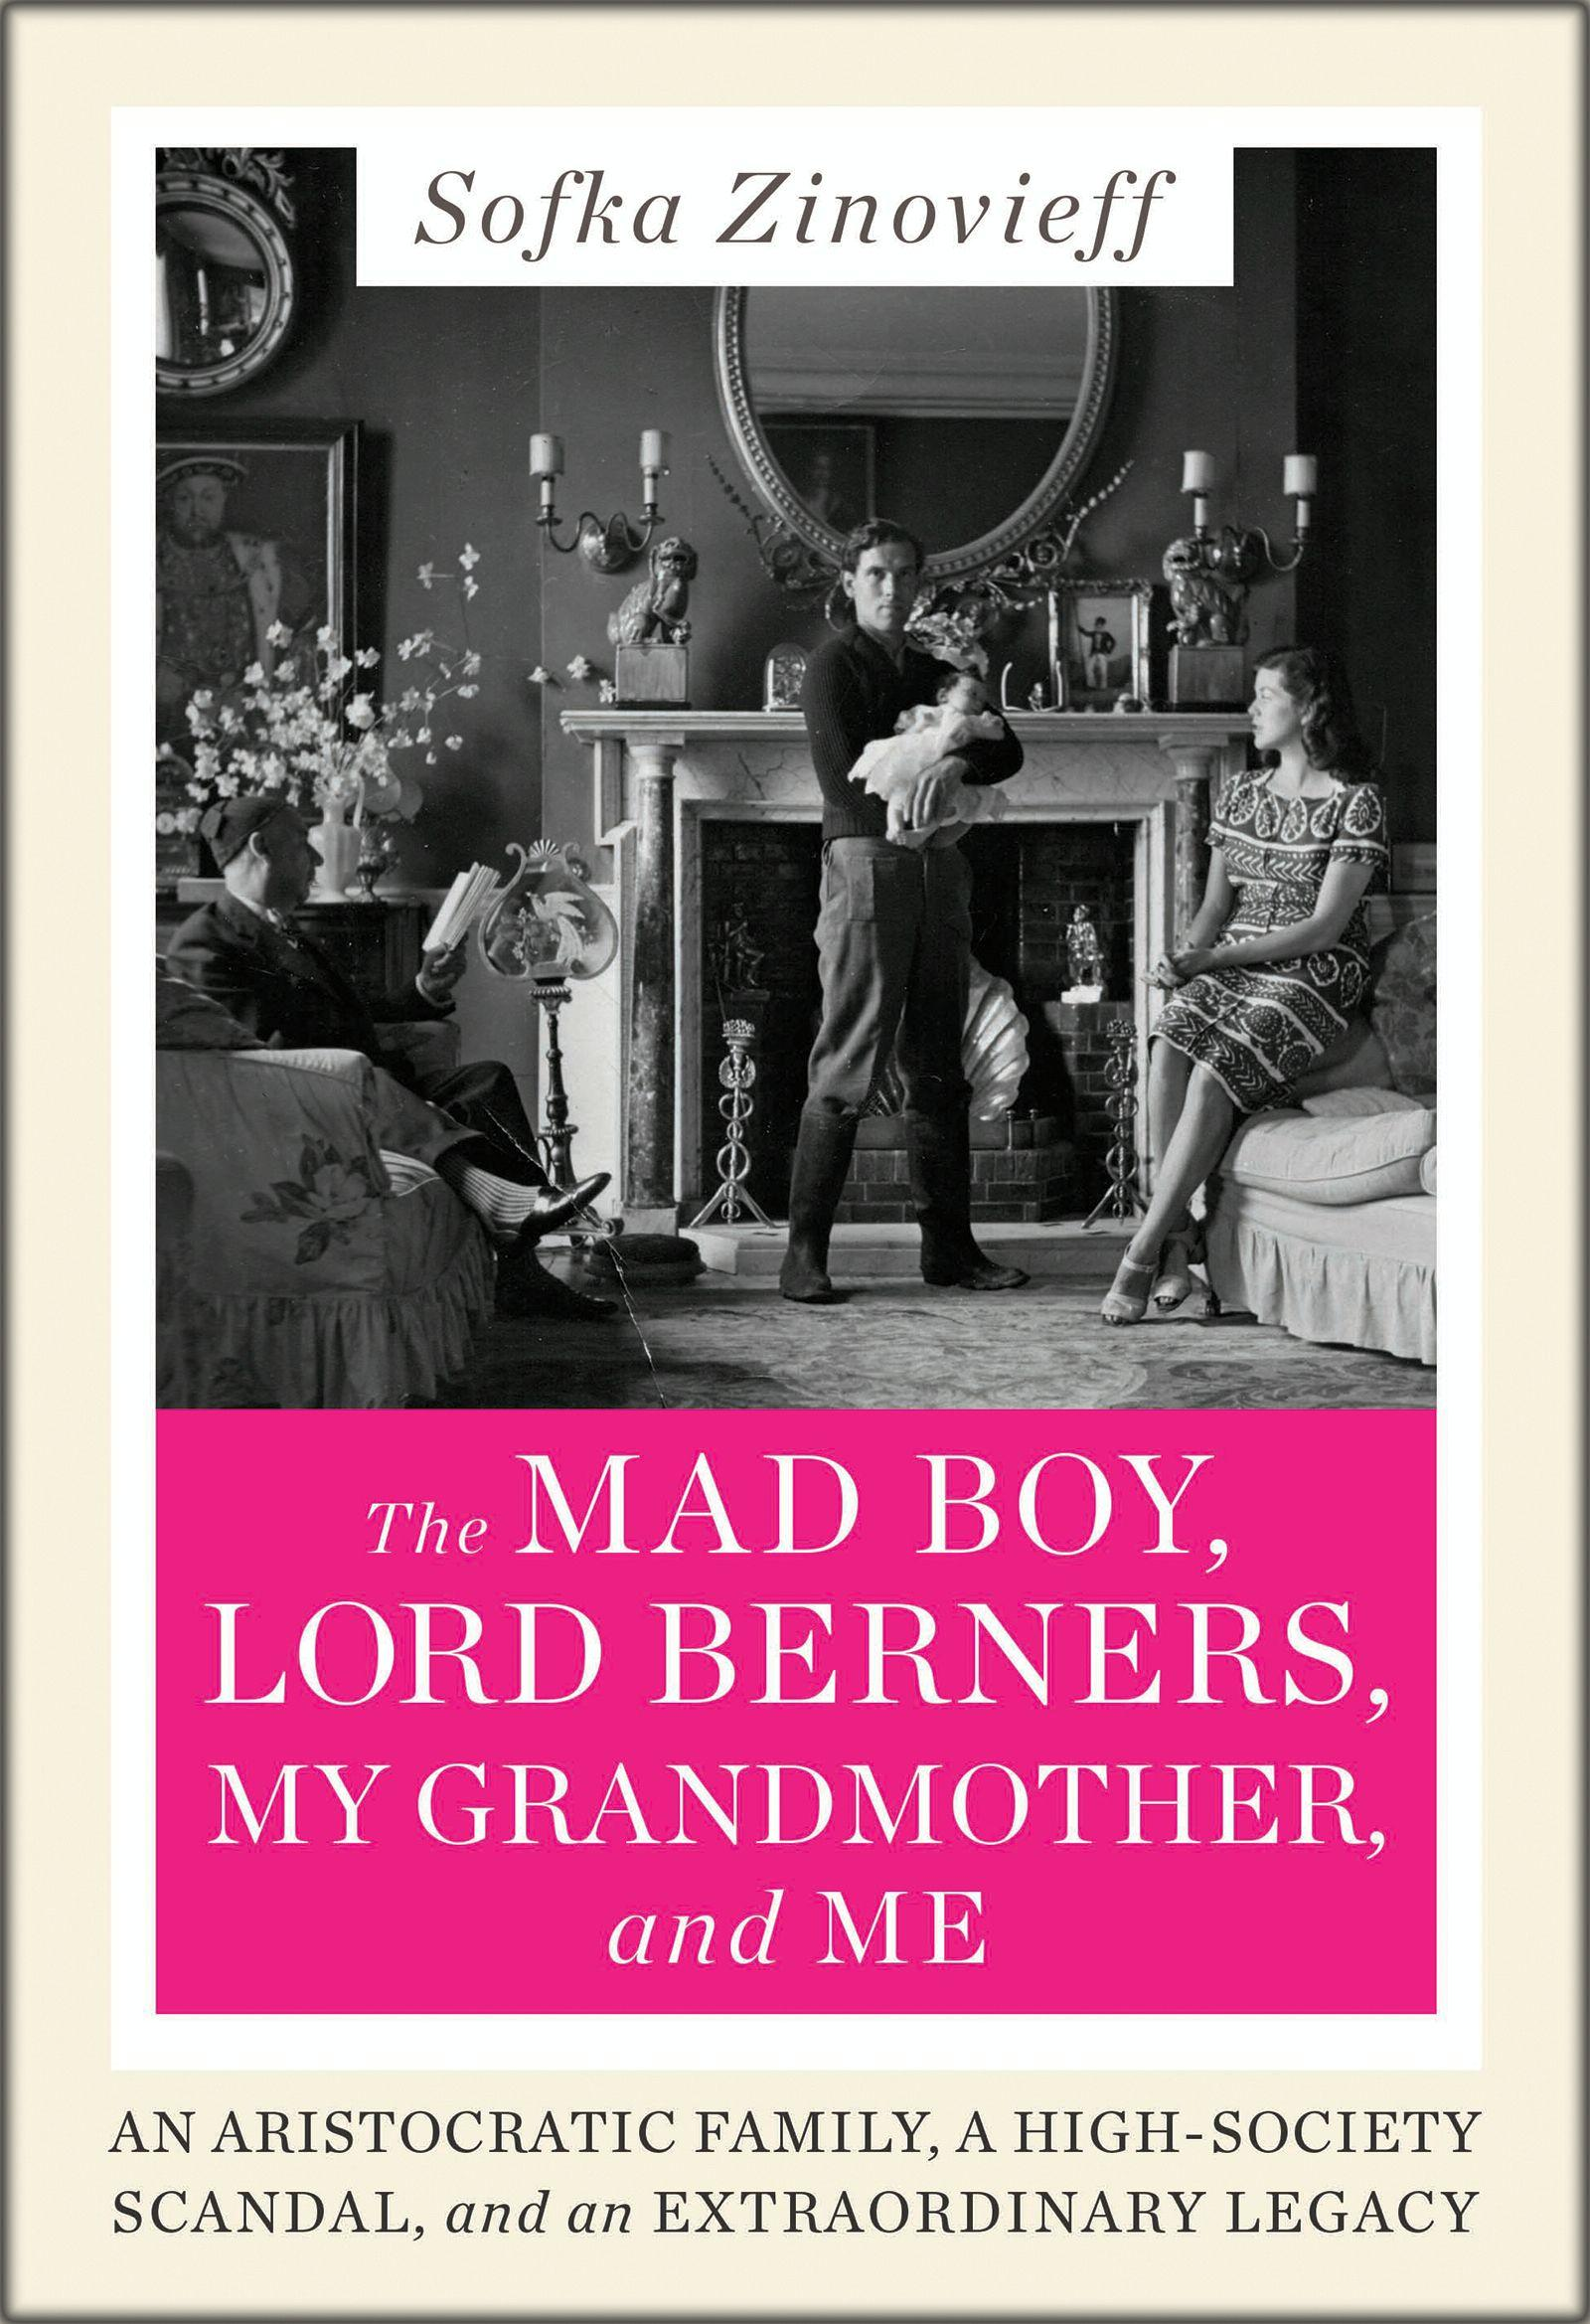 The Mad Boy, Lord Berners, My Grandmother, and Me